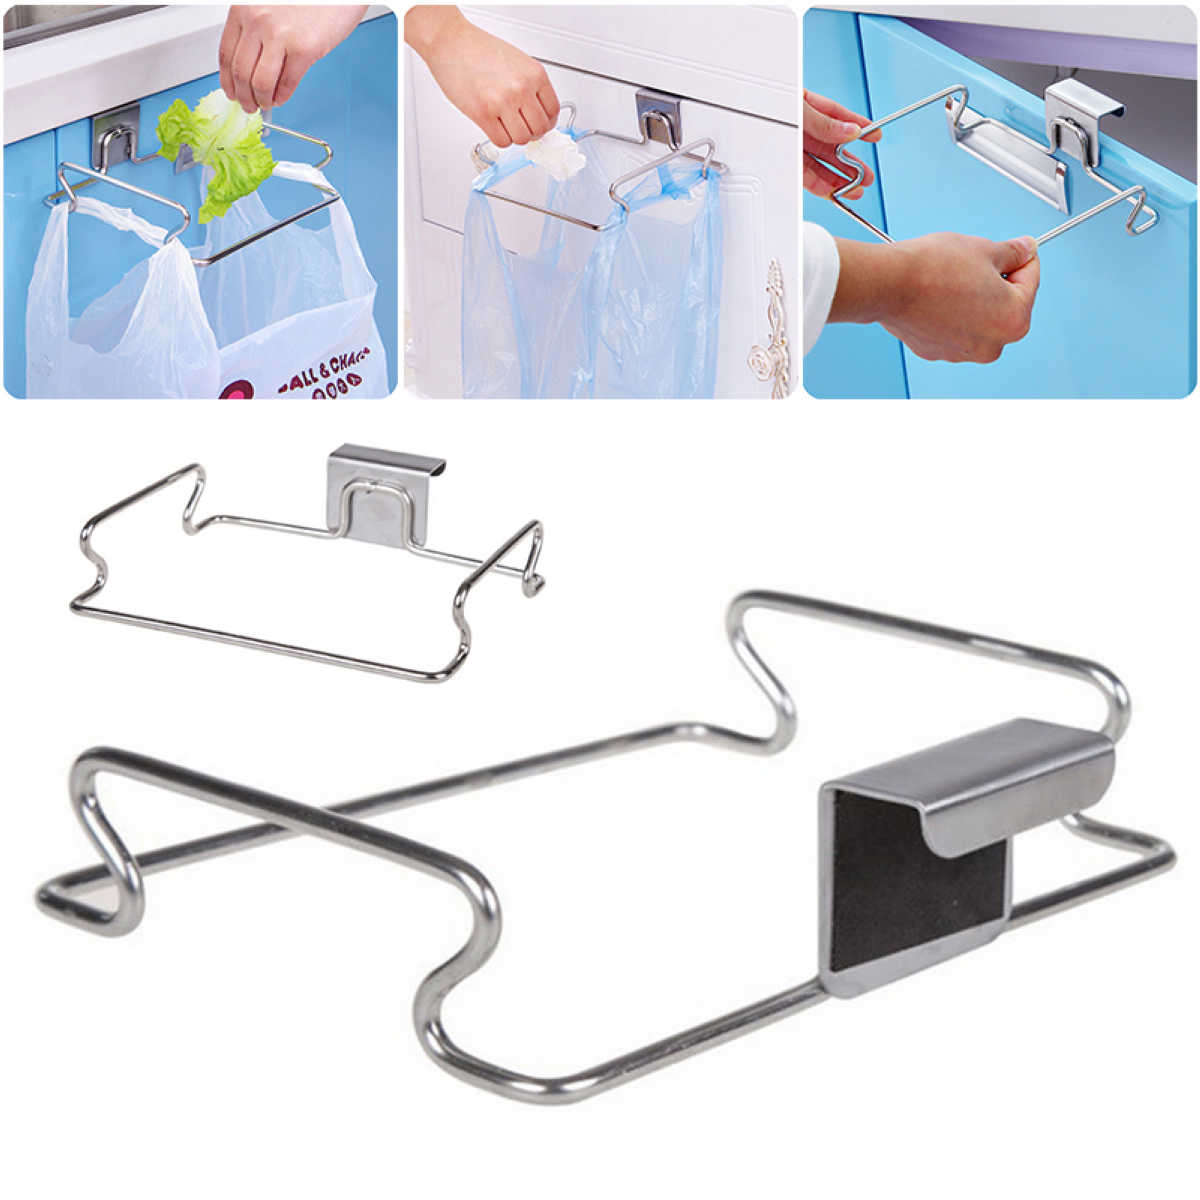 JX-LCLYL New Cabinet Door Back Hanging Holder Rack Organizer For Trash Towel Bag Kitchen ...